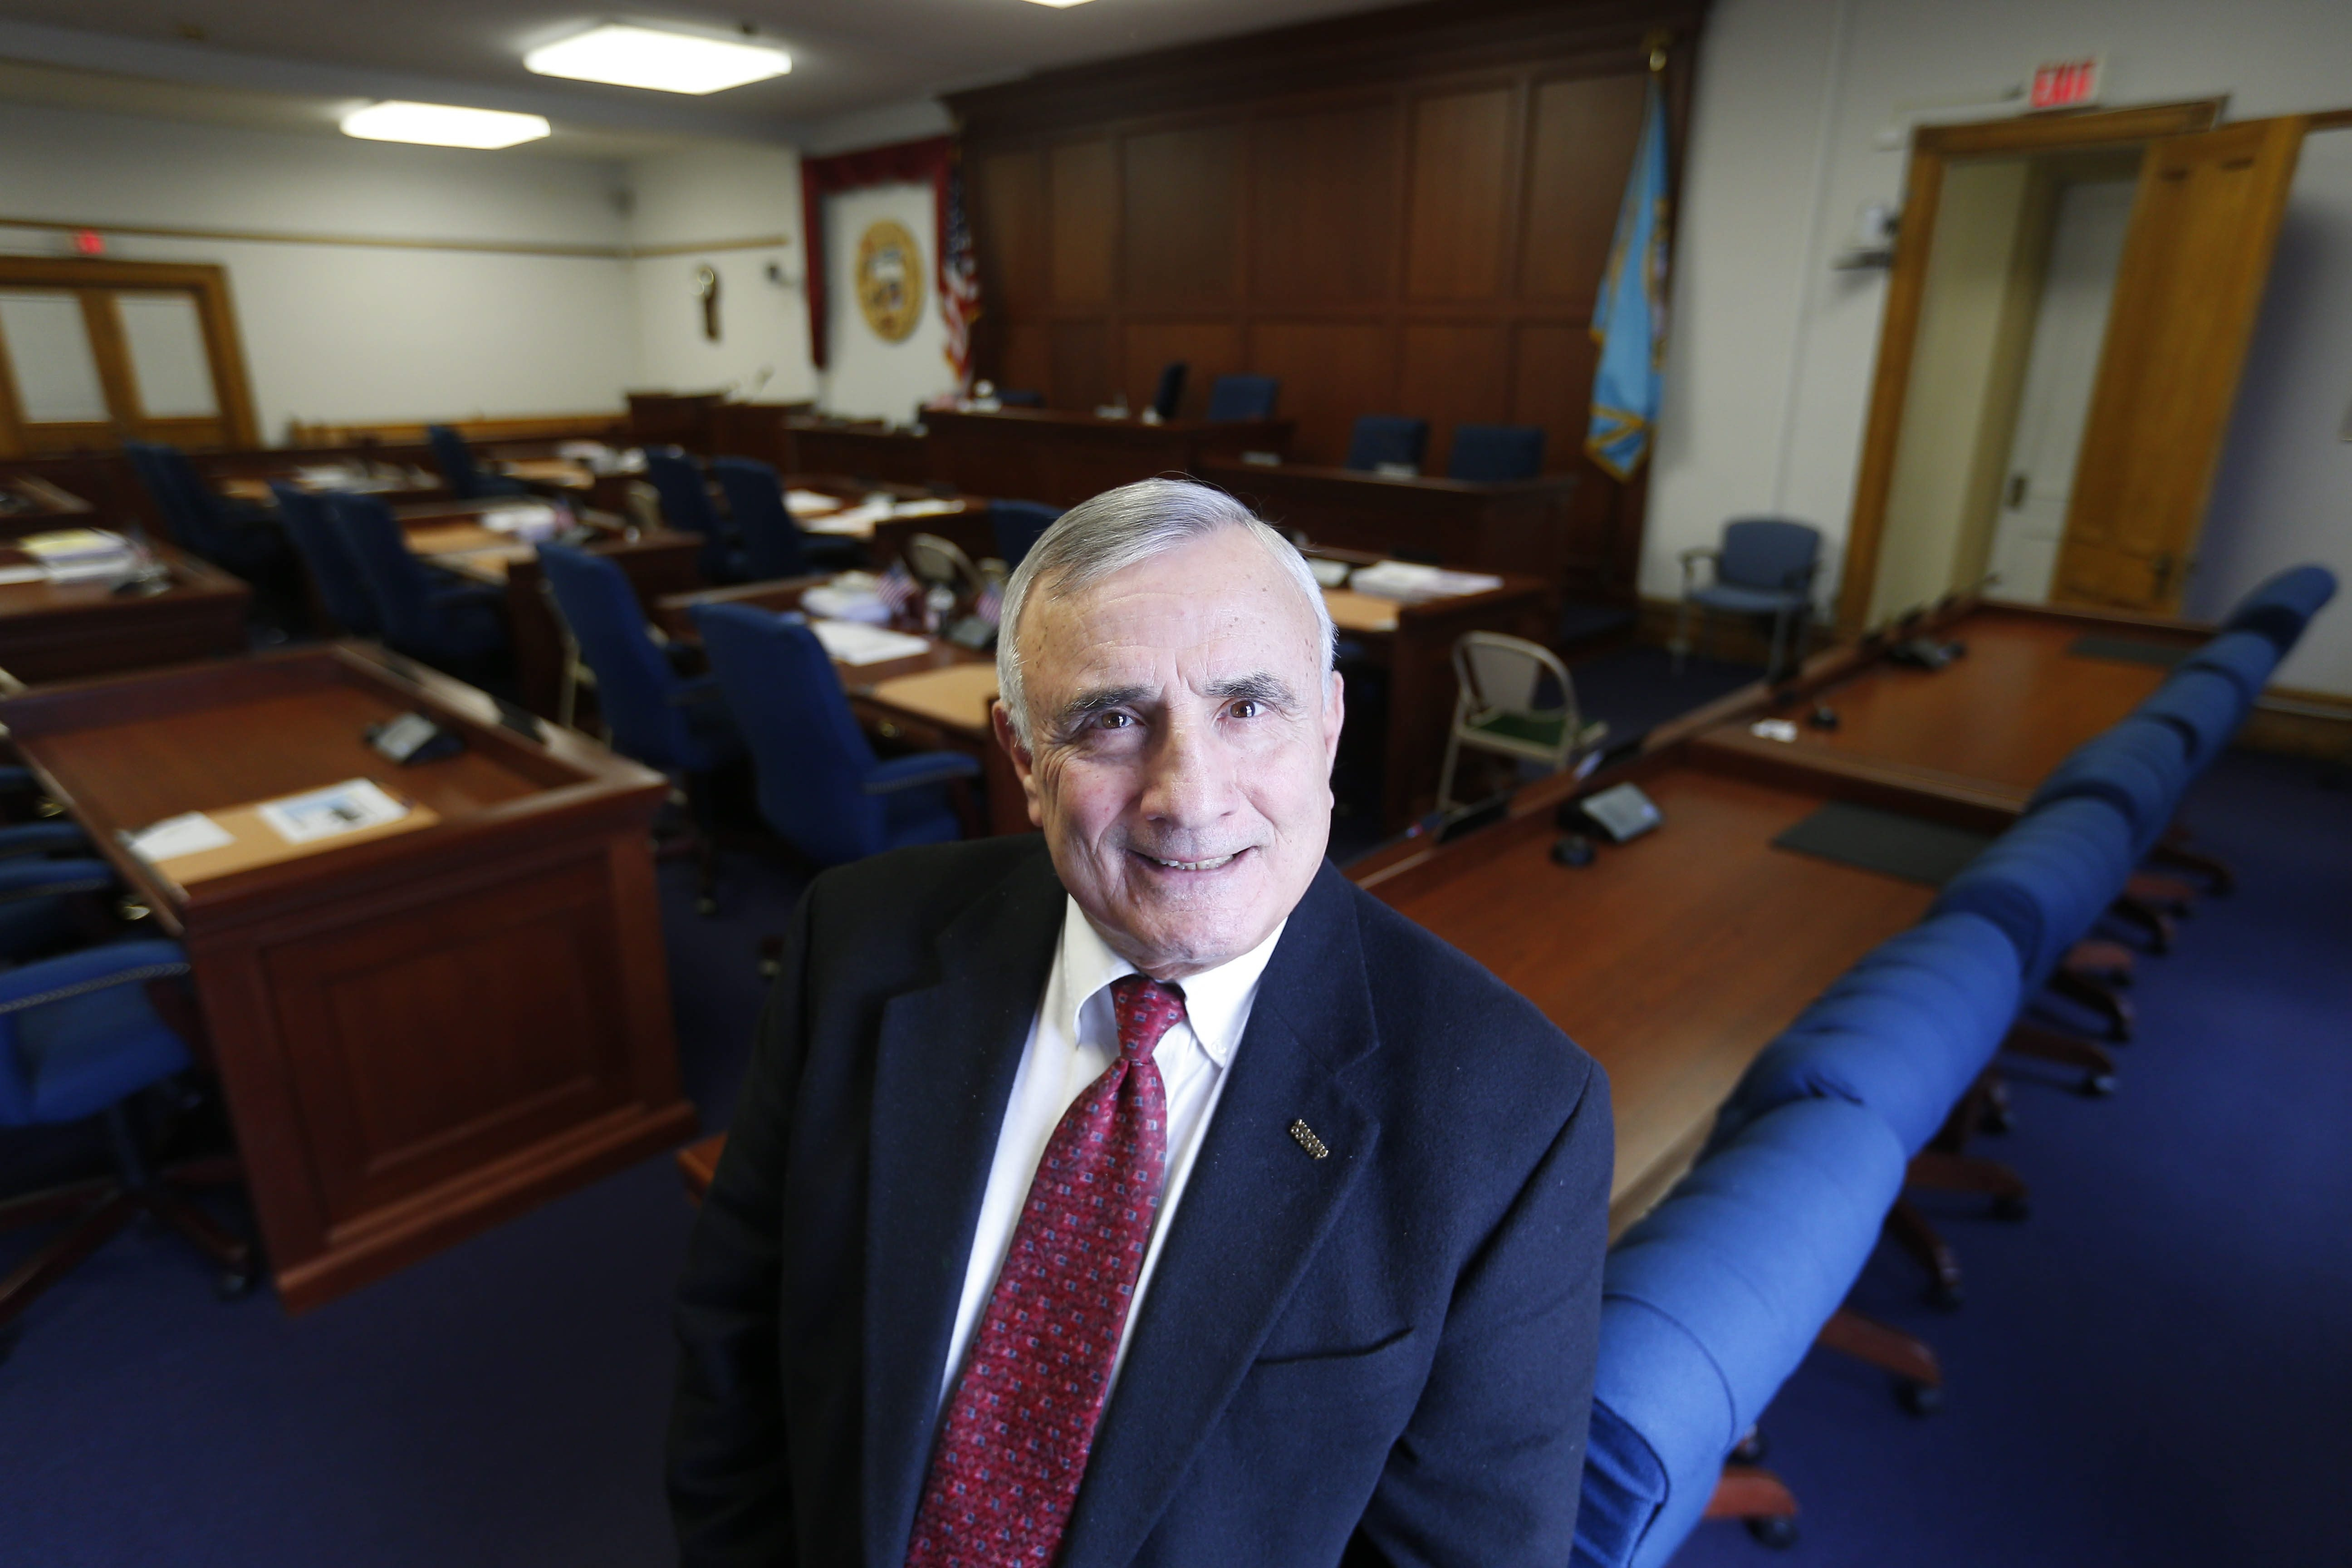 Niagara County Legislature Chairman William L. Ross says his sense of fairness and ability to listen were what earned him leadership positions throughout his 30-year career in elected office.